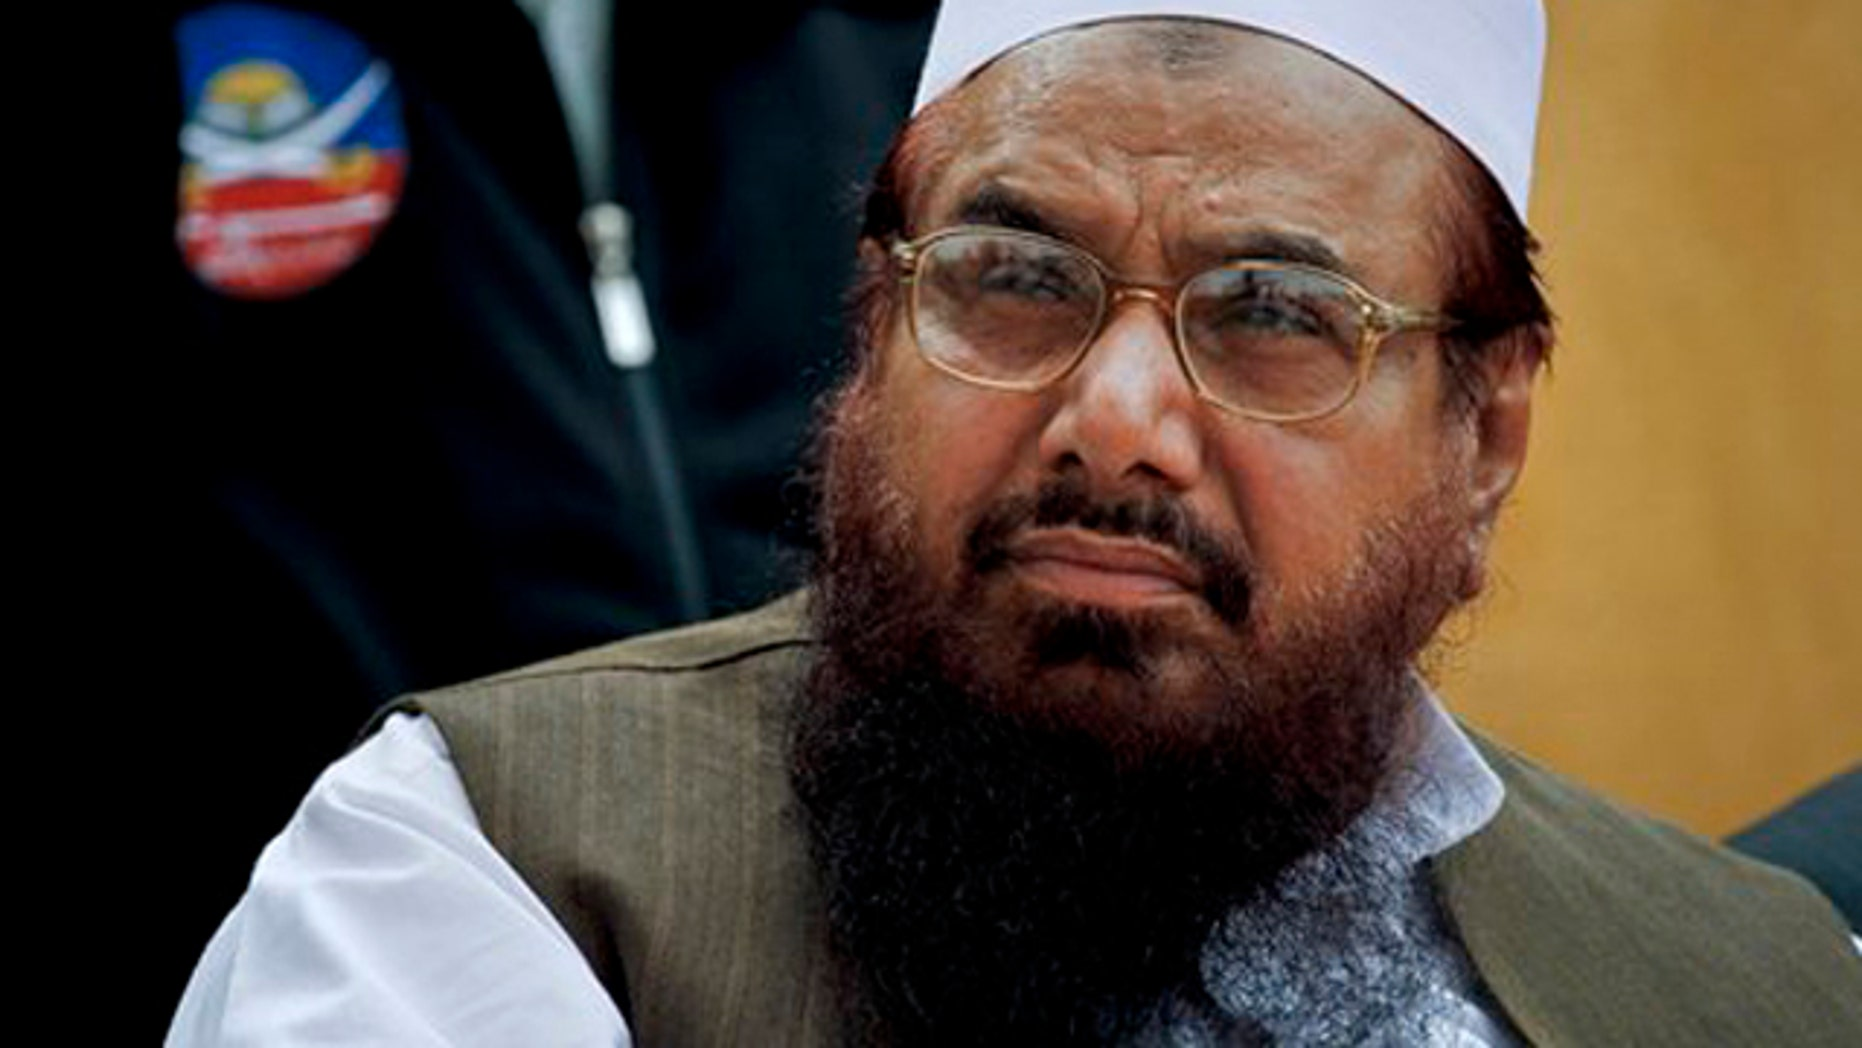 FILE - Lashkar-e-Taiba founder Hafiz Saeed, attends a ceremony in Islamabad, Pakistan.